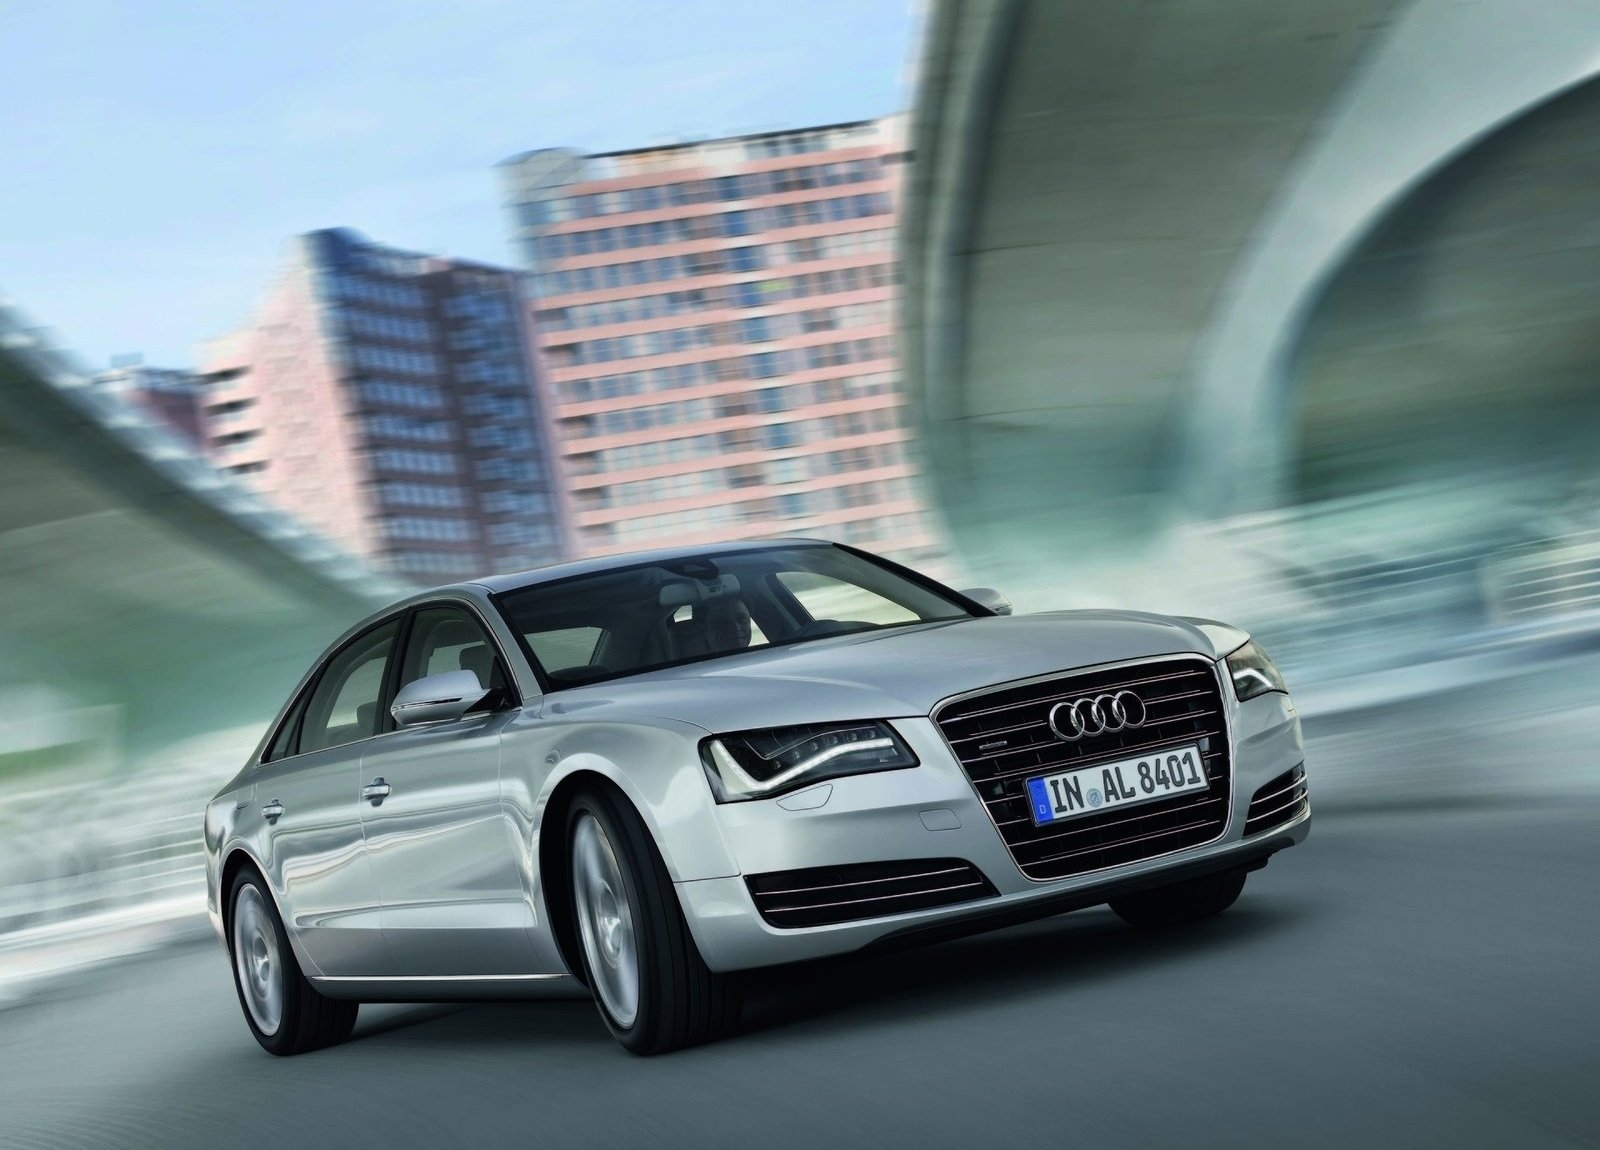 Latest Audi A8 L Hd Wallpapers The World Of Audi Free Download